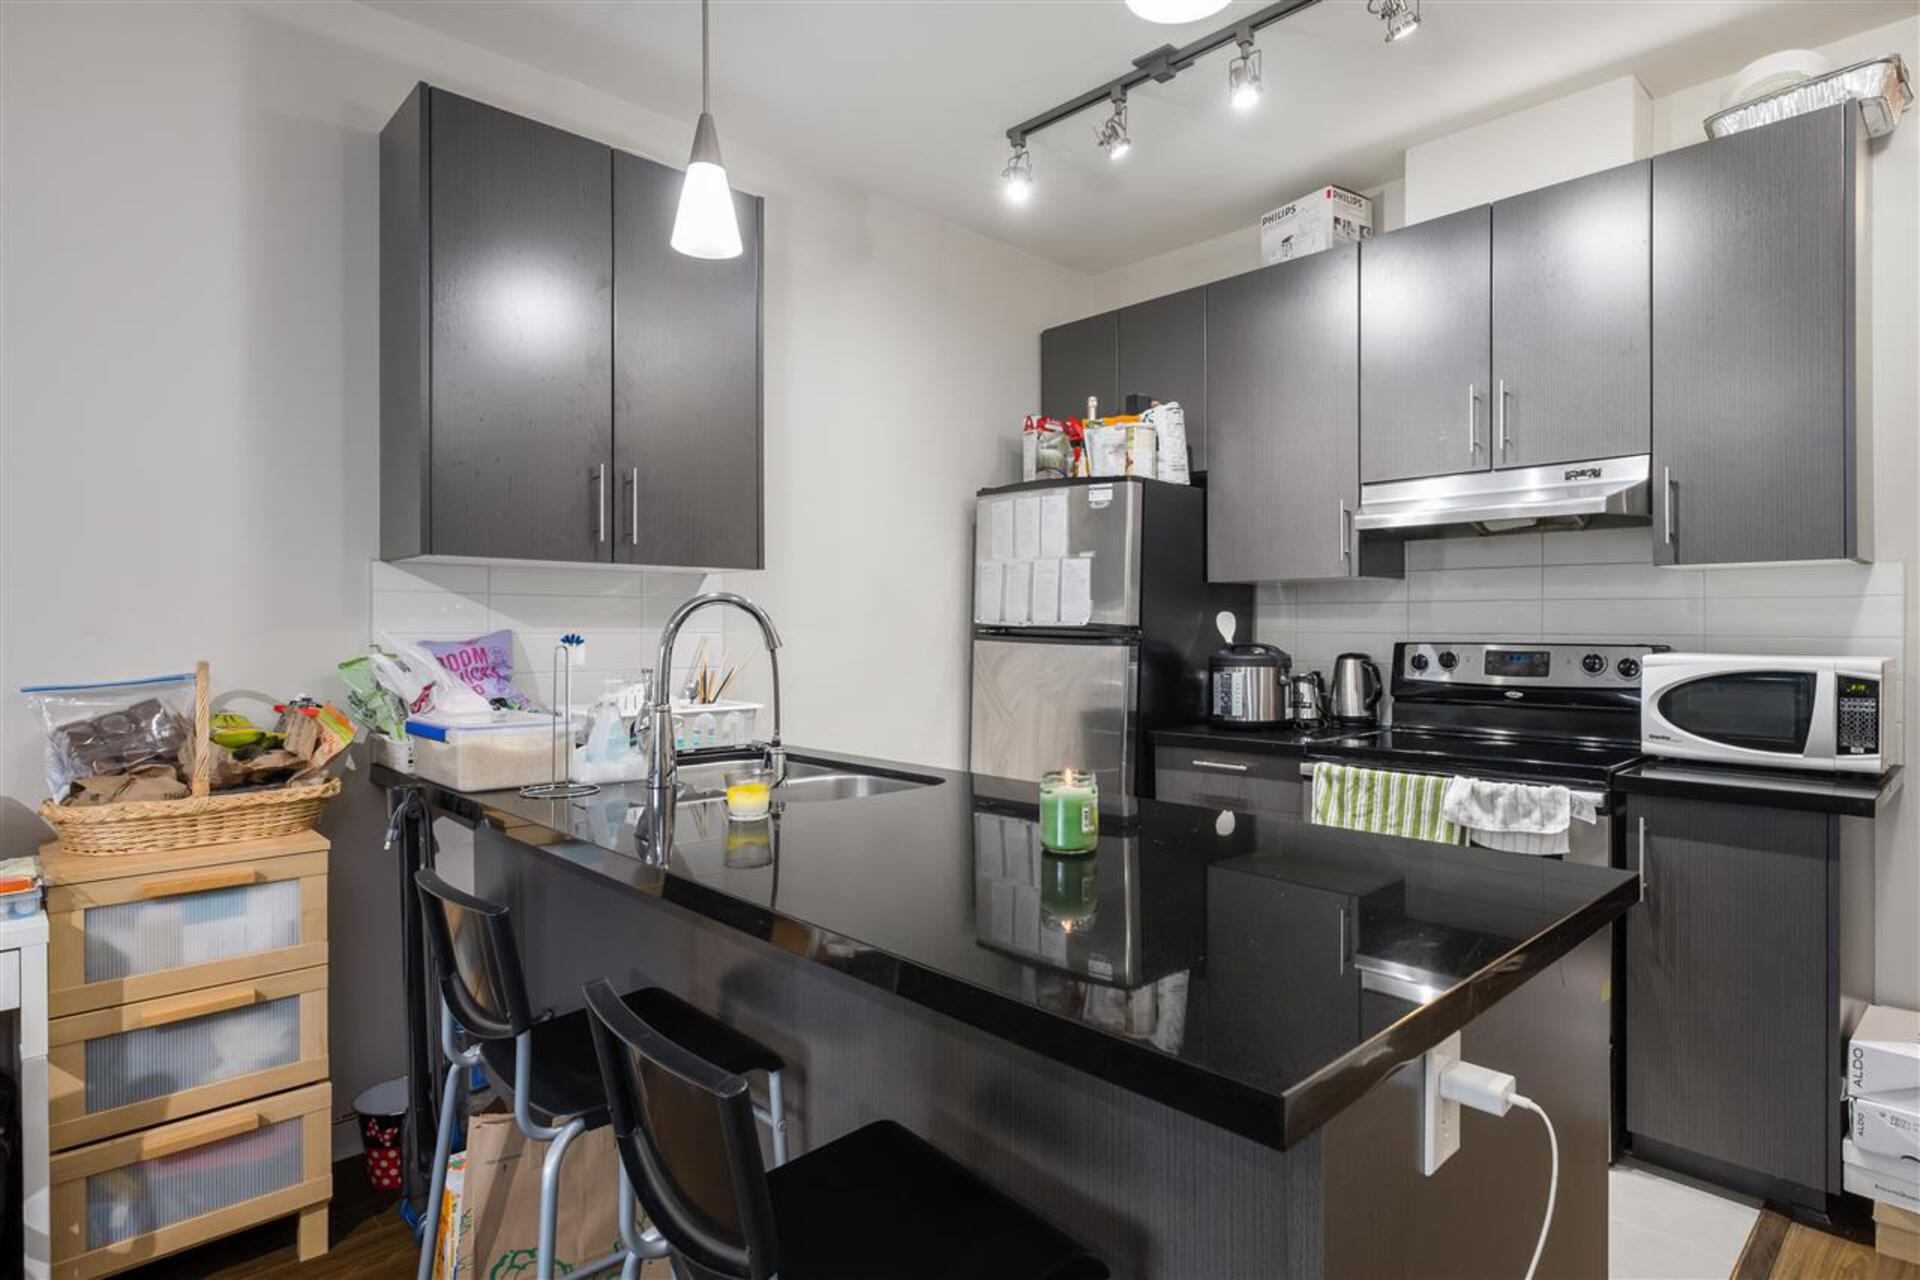 5211-grimmer-street-metrotown-burnaby-south-14 at 208 - 5211 Grimmer Street, Metrotown, Burnaby South